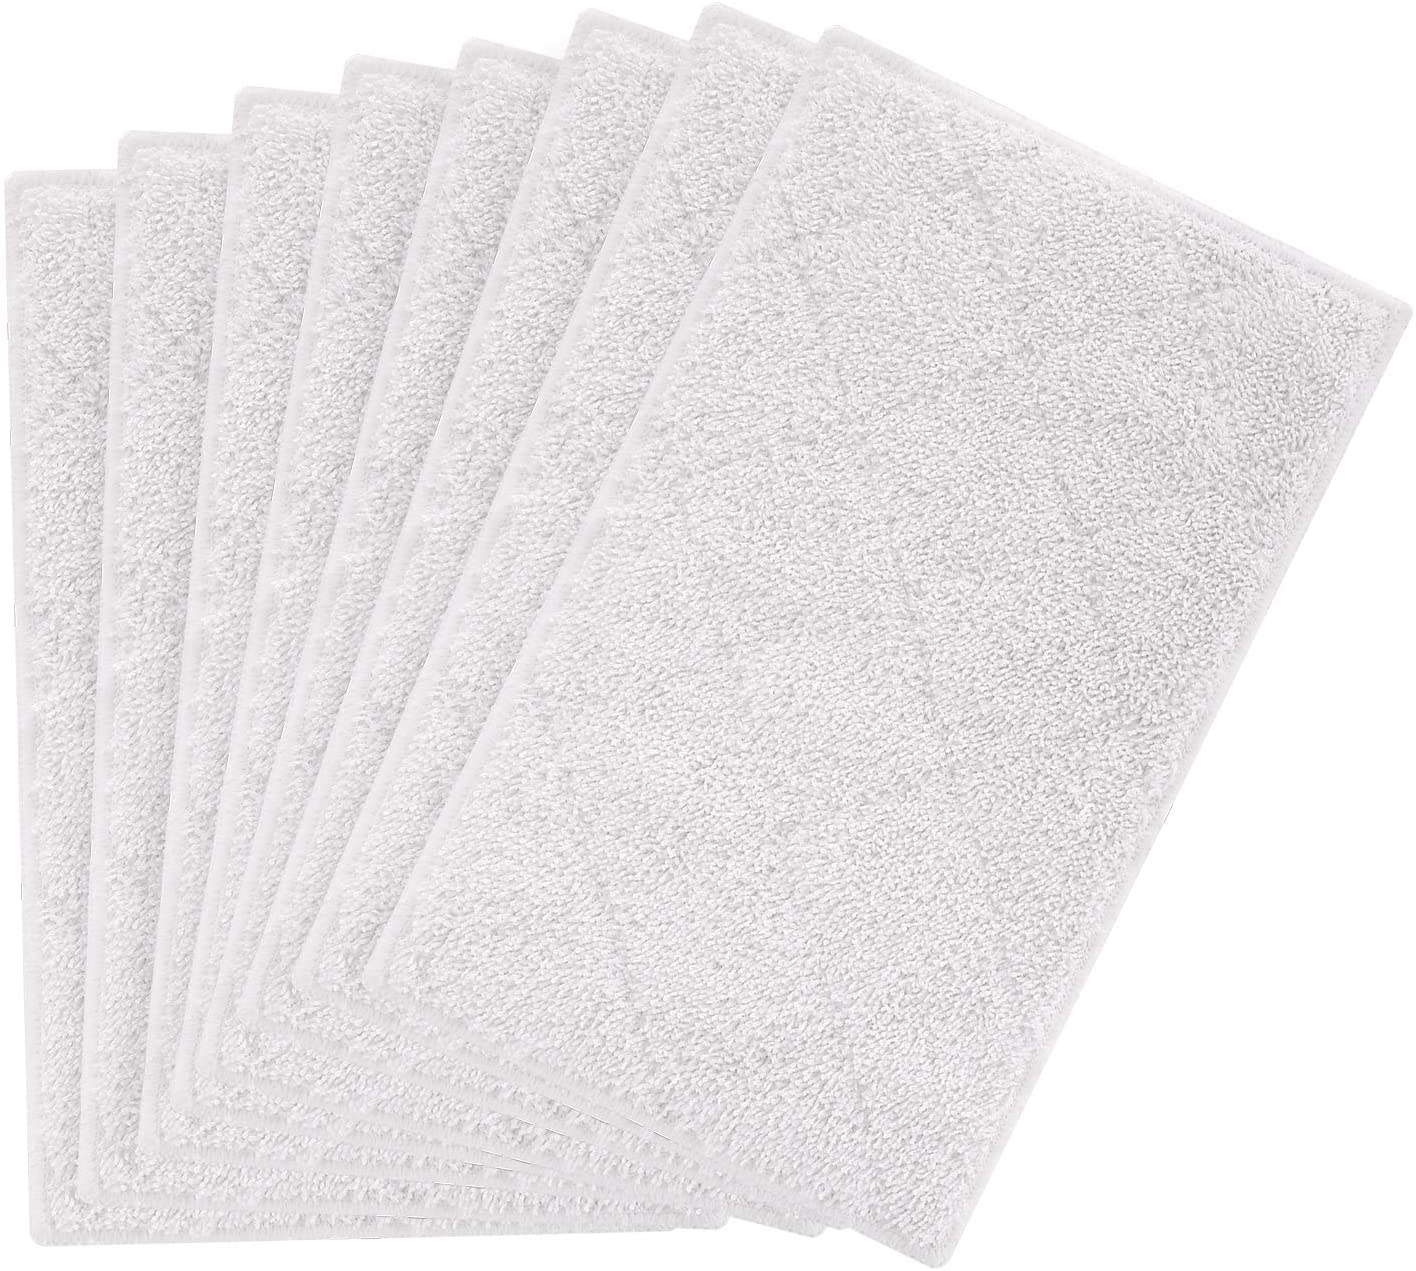 isinlive 8 Pack Cleaning Mop Pads Replacement Compatible Light n Easy Steam Mop Pads S3101 S7326 S3601 Floor Steam Cleaner